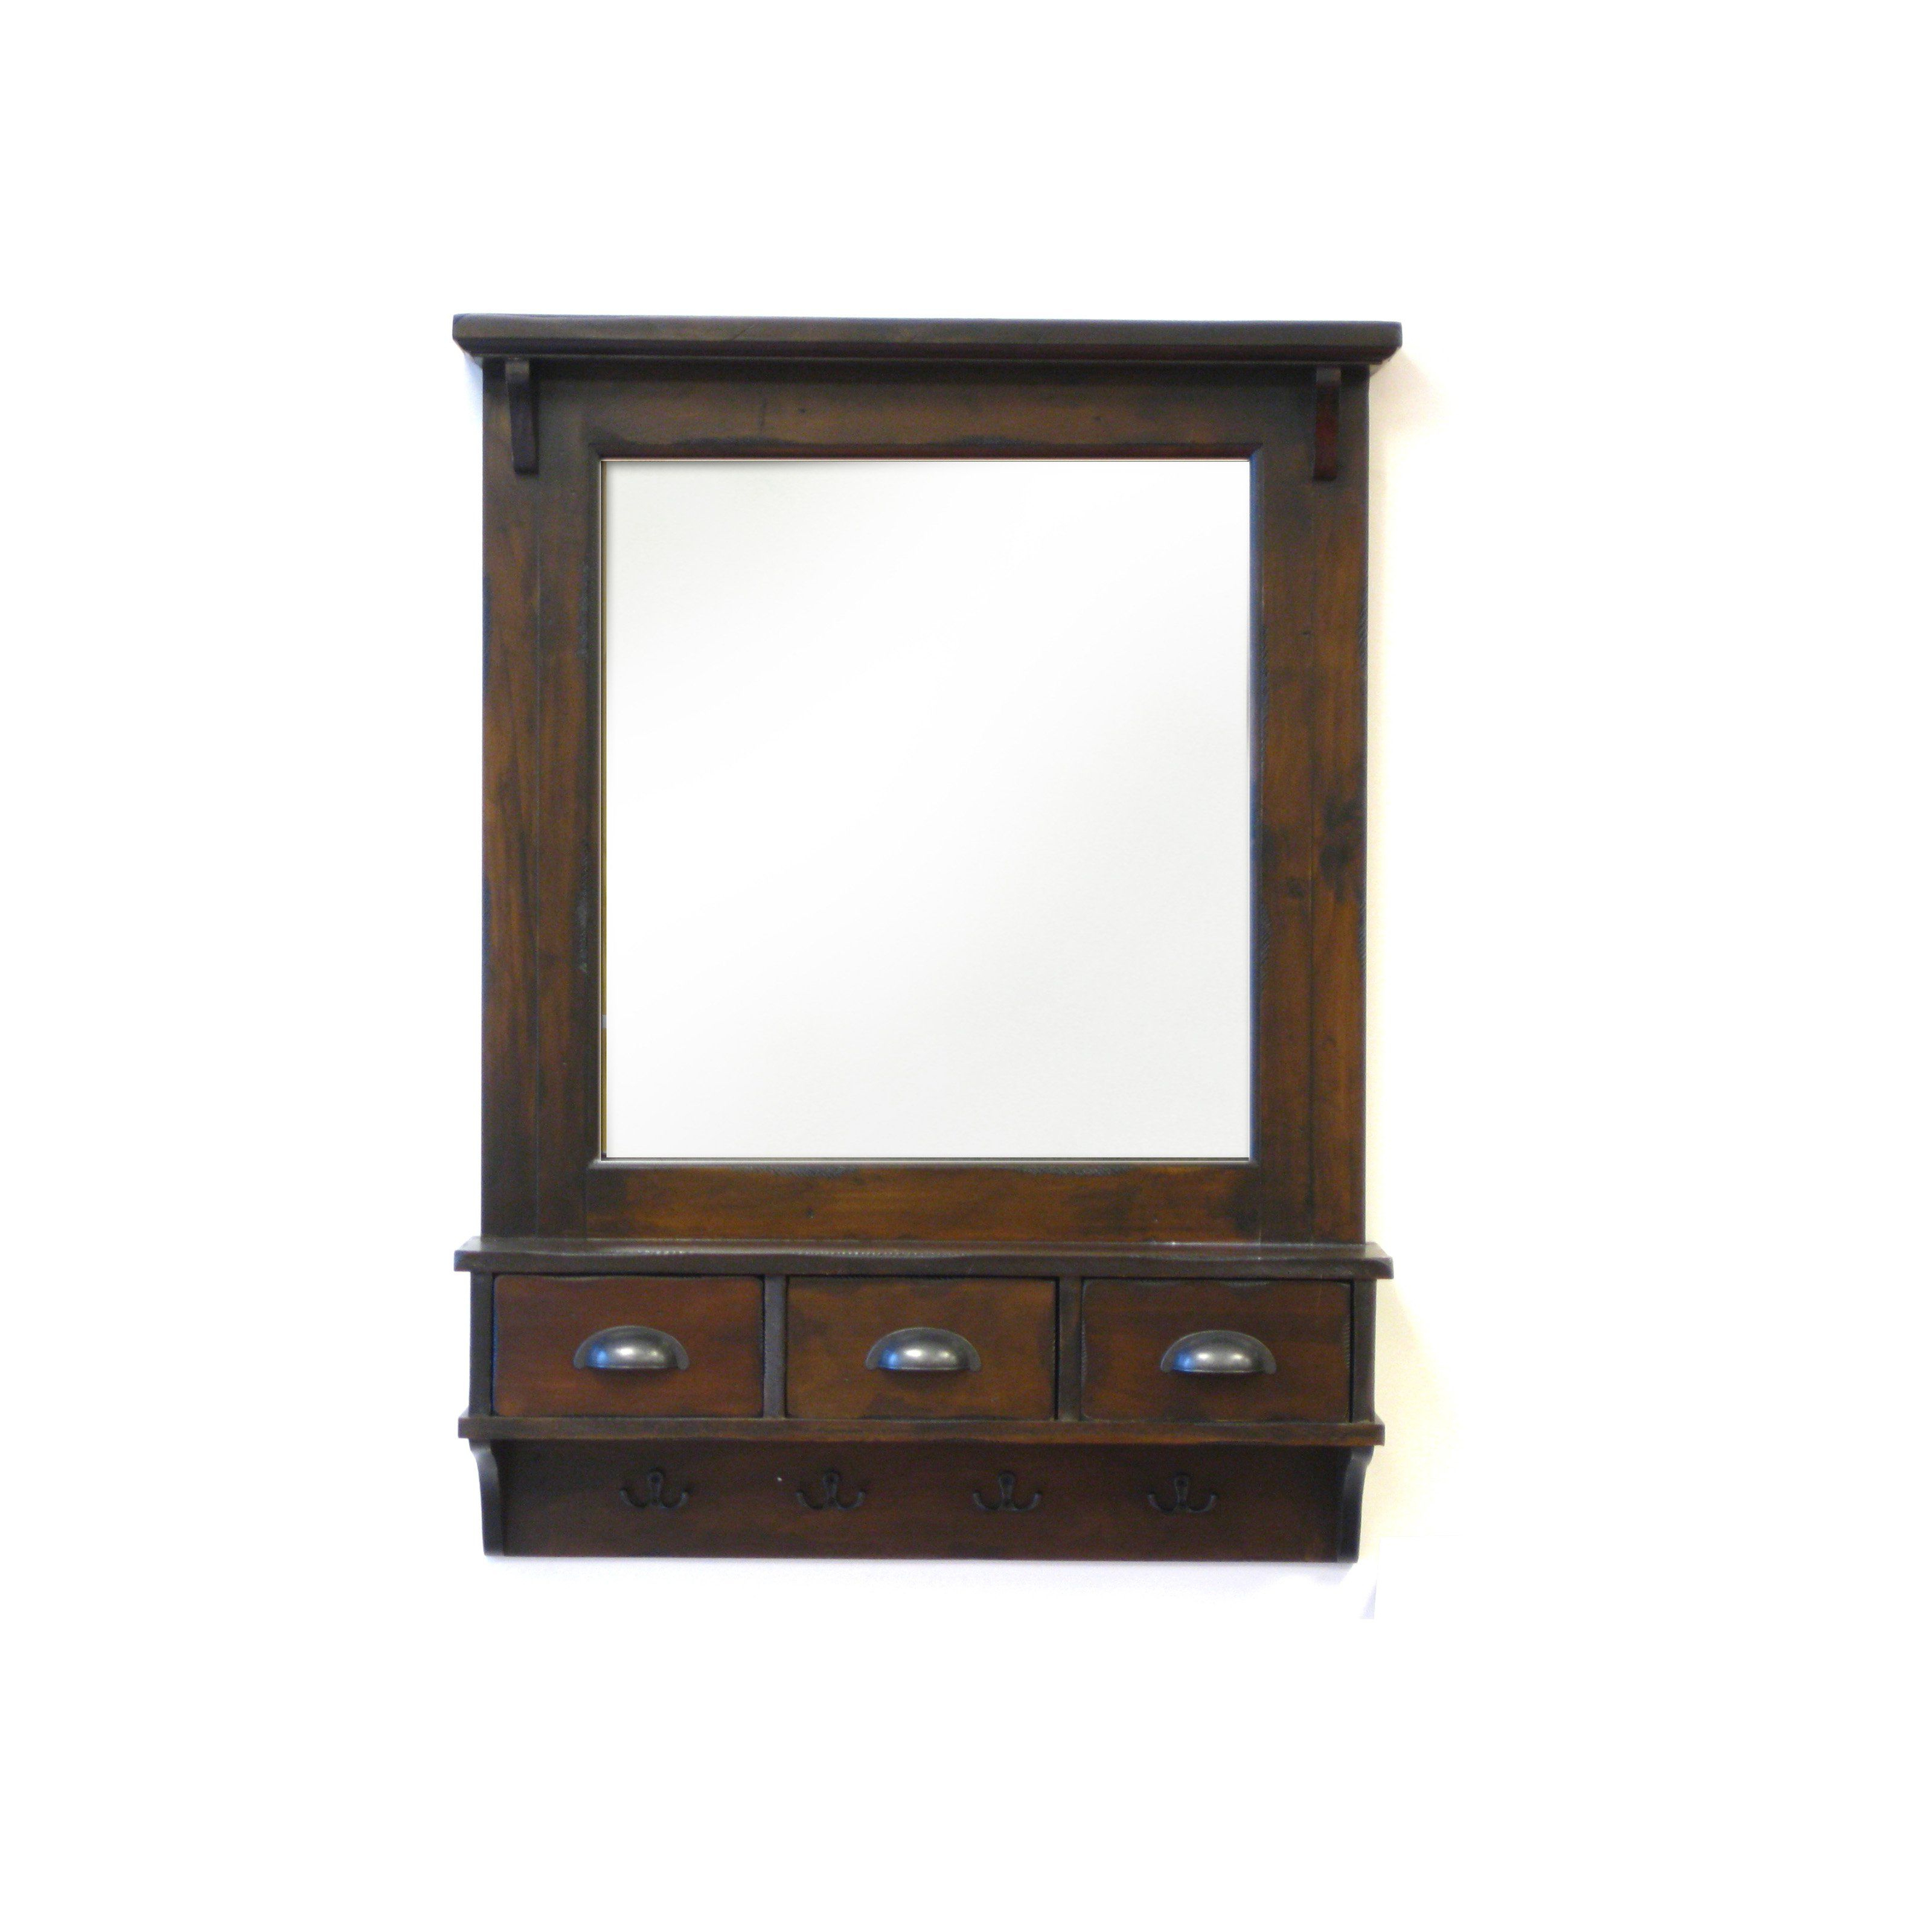 2019 Wall Mirrors With Shelf And Hooks For Bombay Wall Mirror W/ Drawer Storage & Hooks – 27W X 37H In (View 1 of 20)